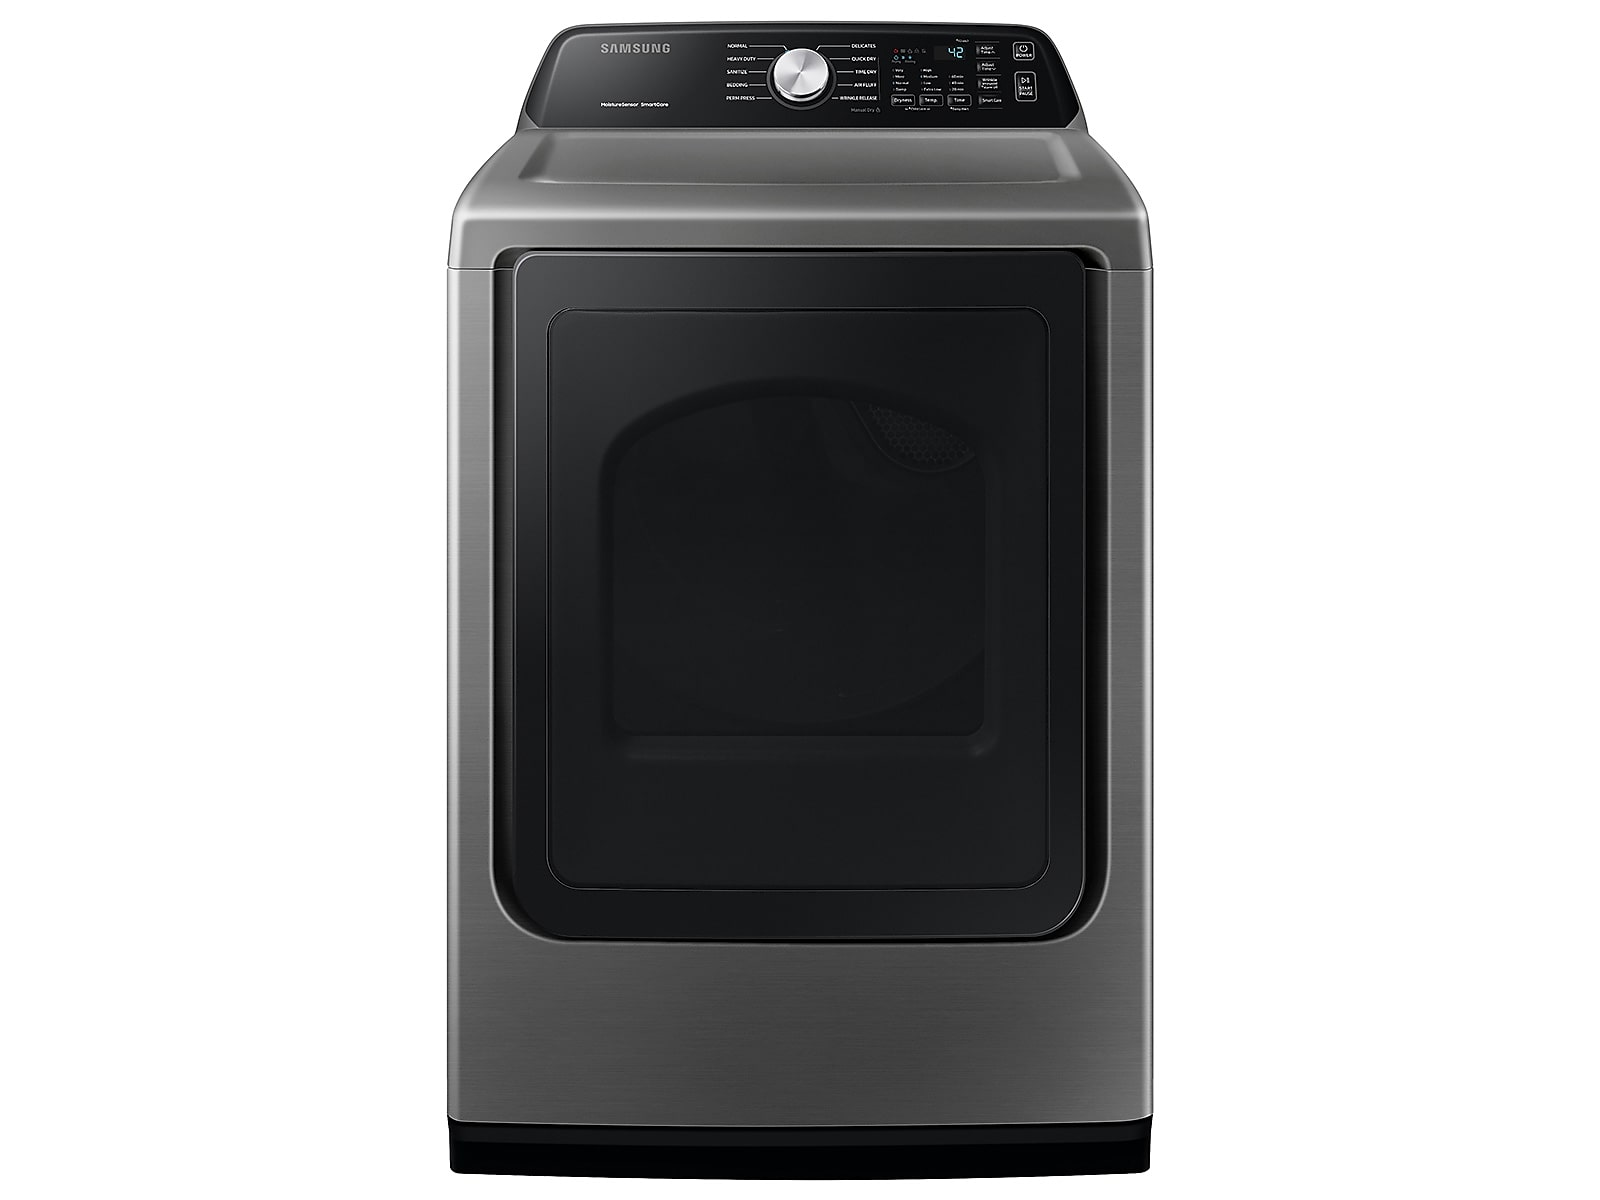 Samsung coupon: Samsung 7.4 cu. ft. Gas Dryer with Sensor Dry in Platinum(DVG45T3400P/A3)